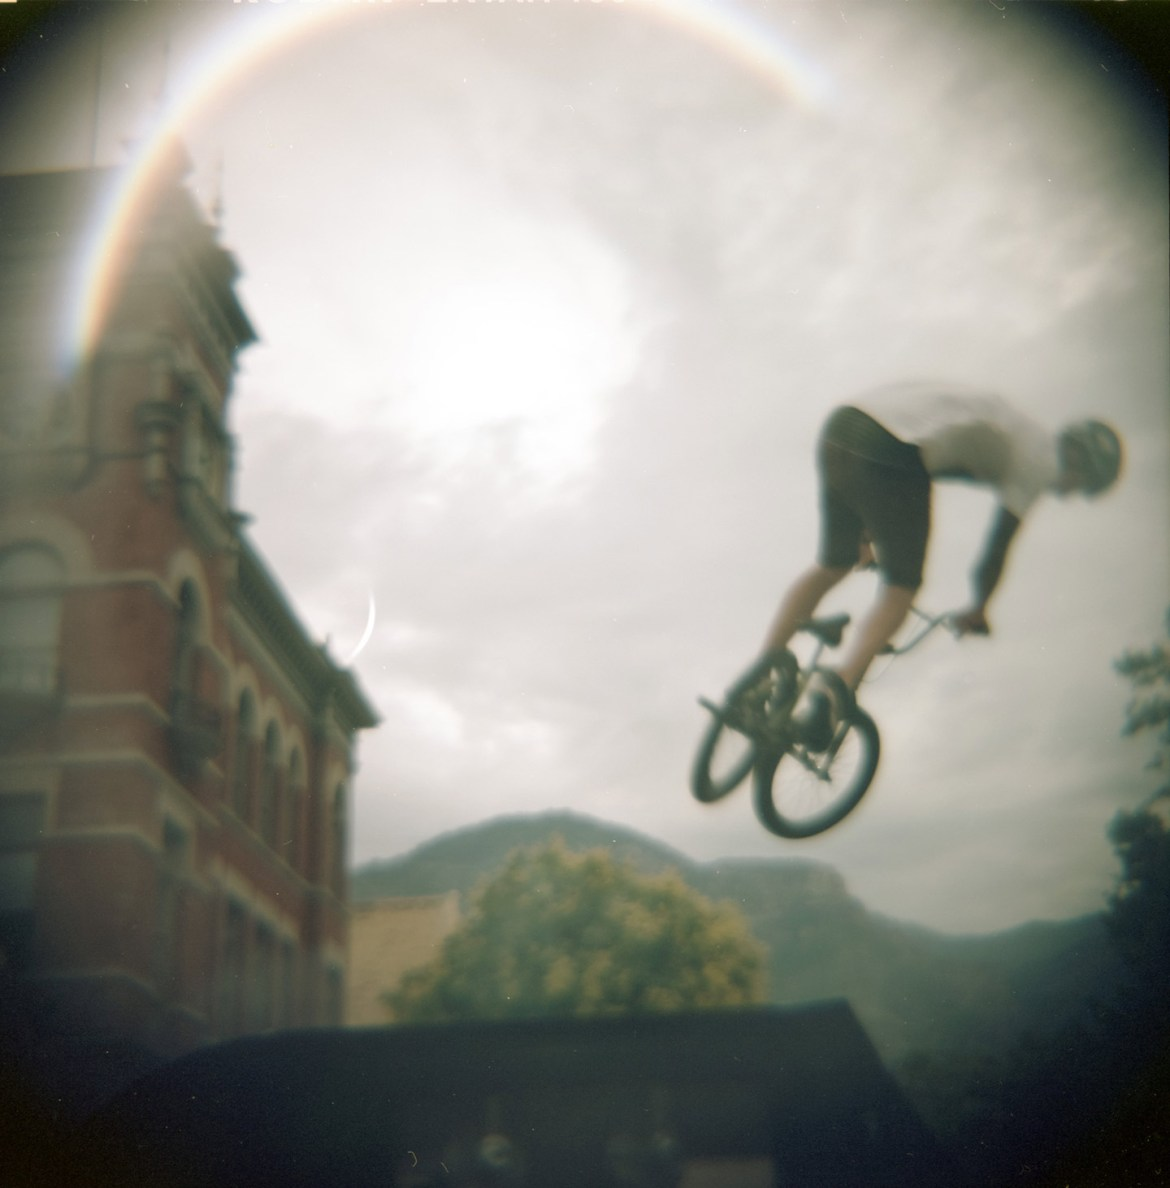 A cyclist performs some BMX stunts in the parade